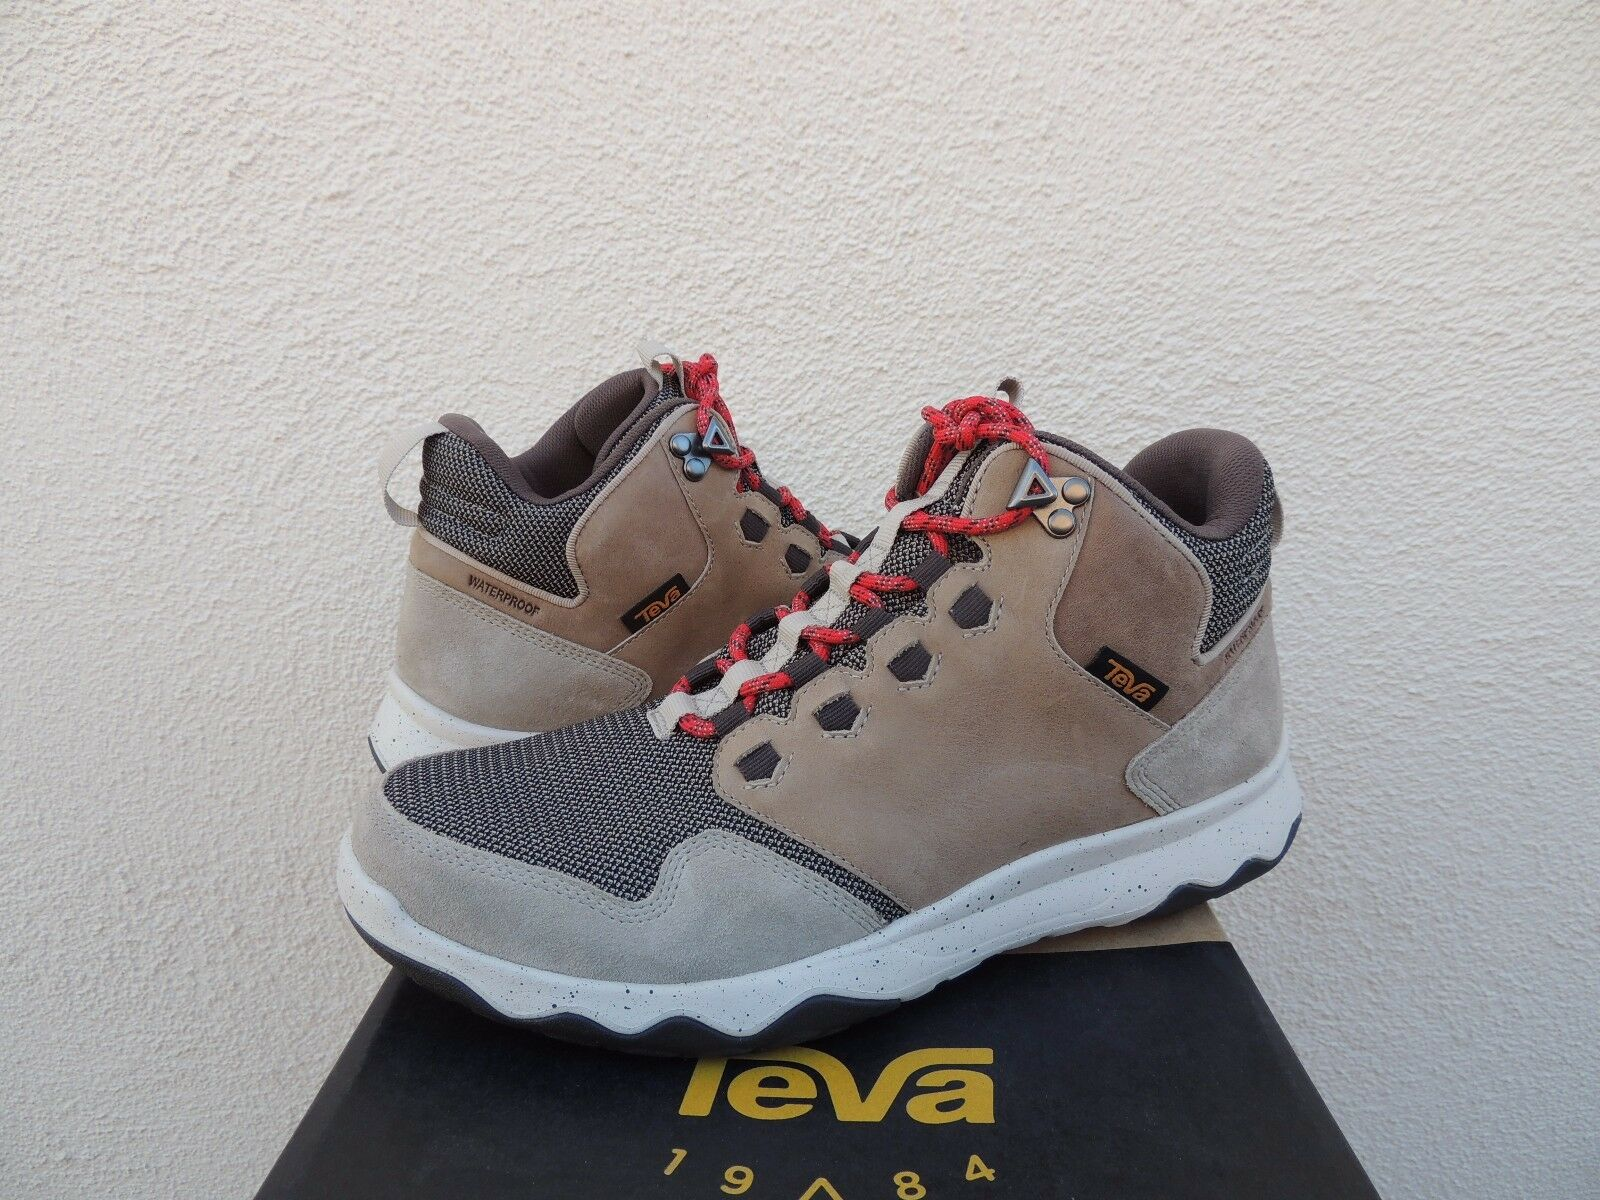 TEVA PLAZA TAUPE ARROWOOD MID WP ~NEW LEATHER SNEAKER BOOTS, hommesUS 9/ EUR 42 ~NEW WP 754e83